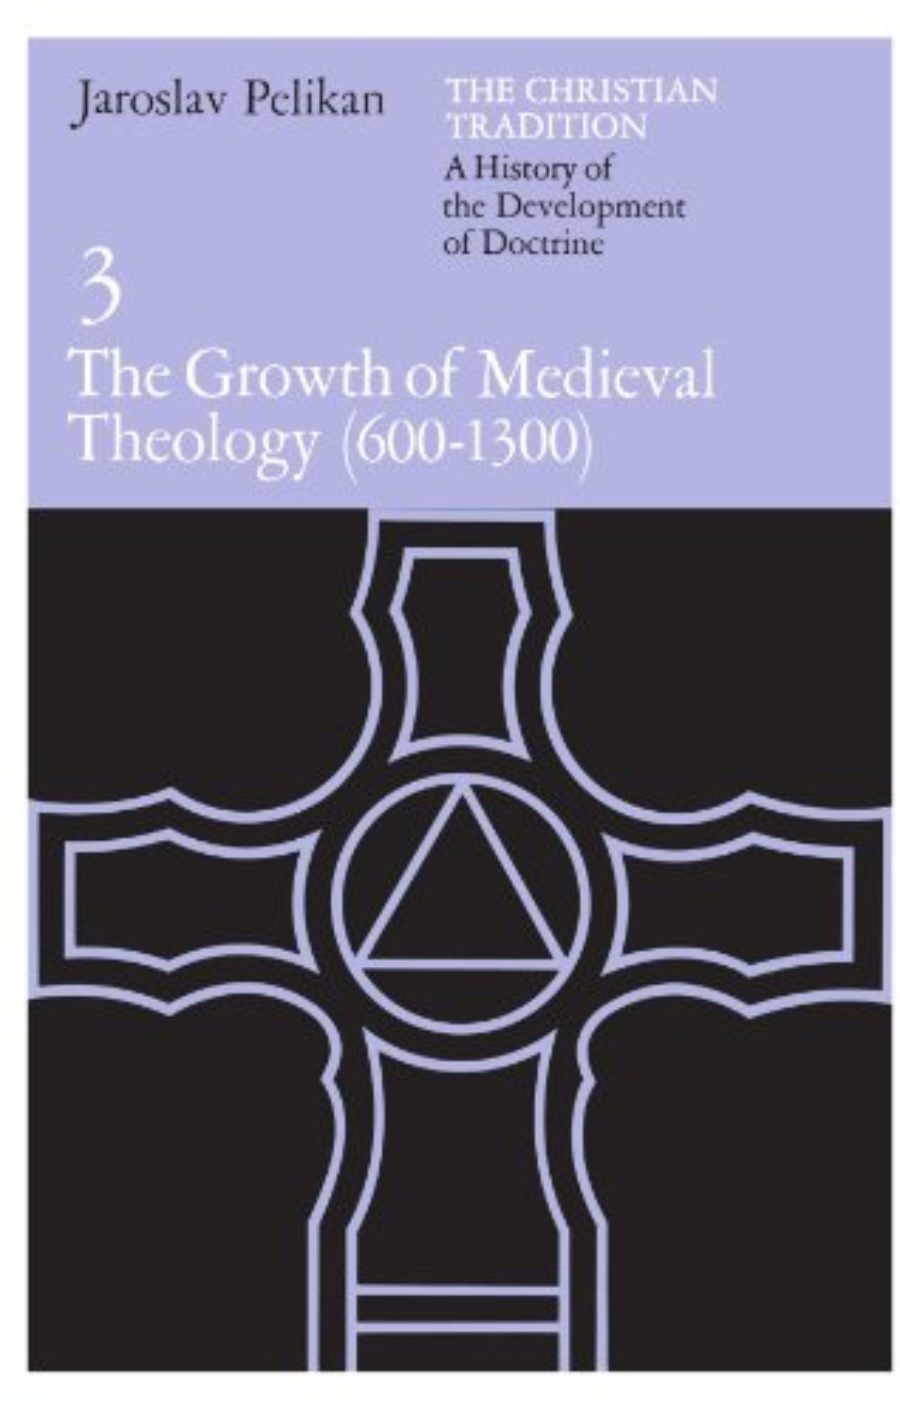 Cover of The Christian Tradition: A History of the Development of Doctrine, Vol. 3: The Growth of Medieval Theology (600-1300)